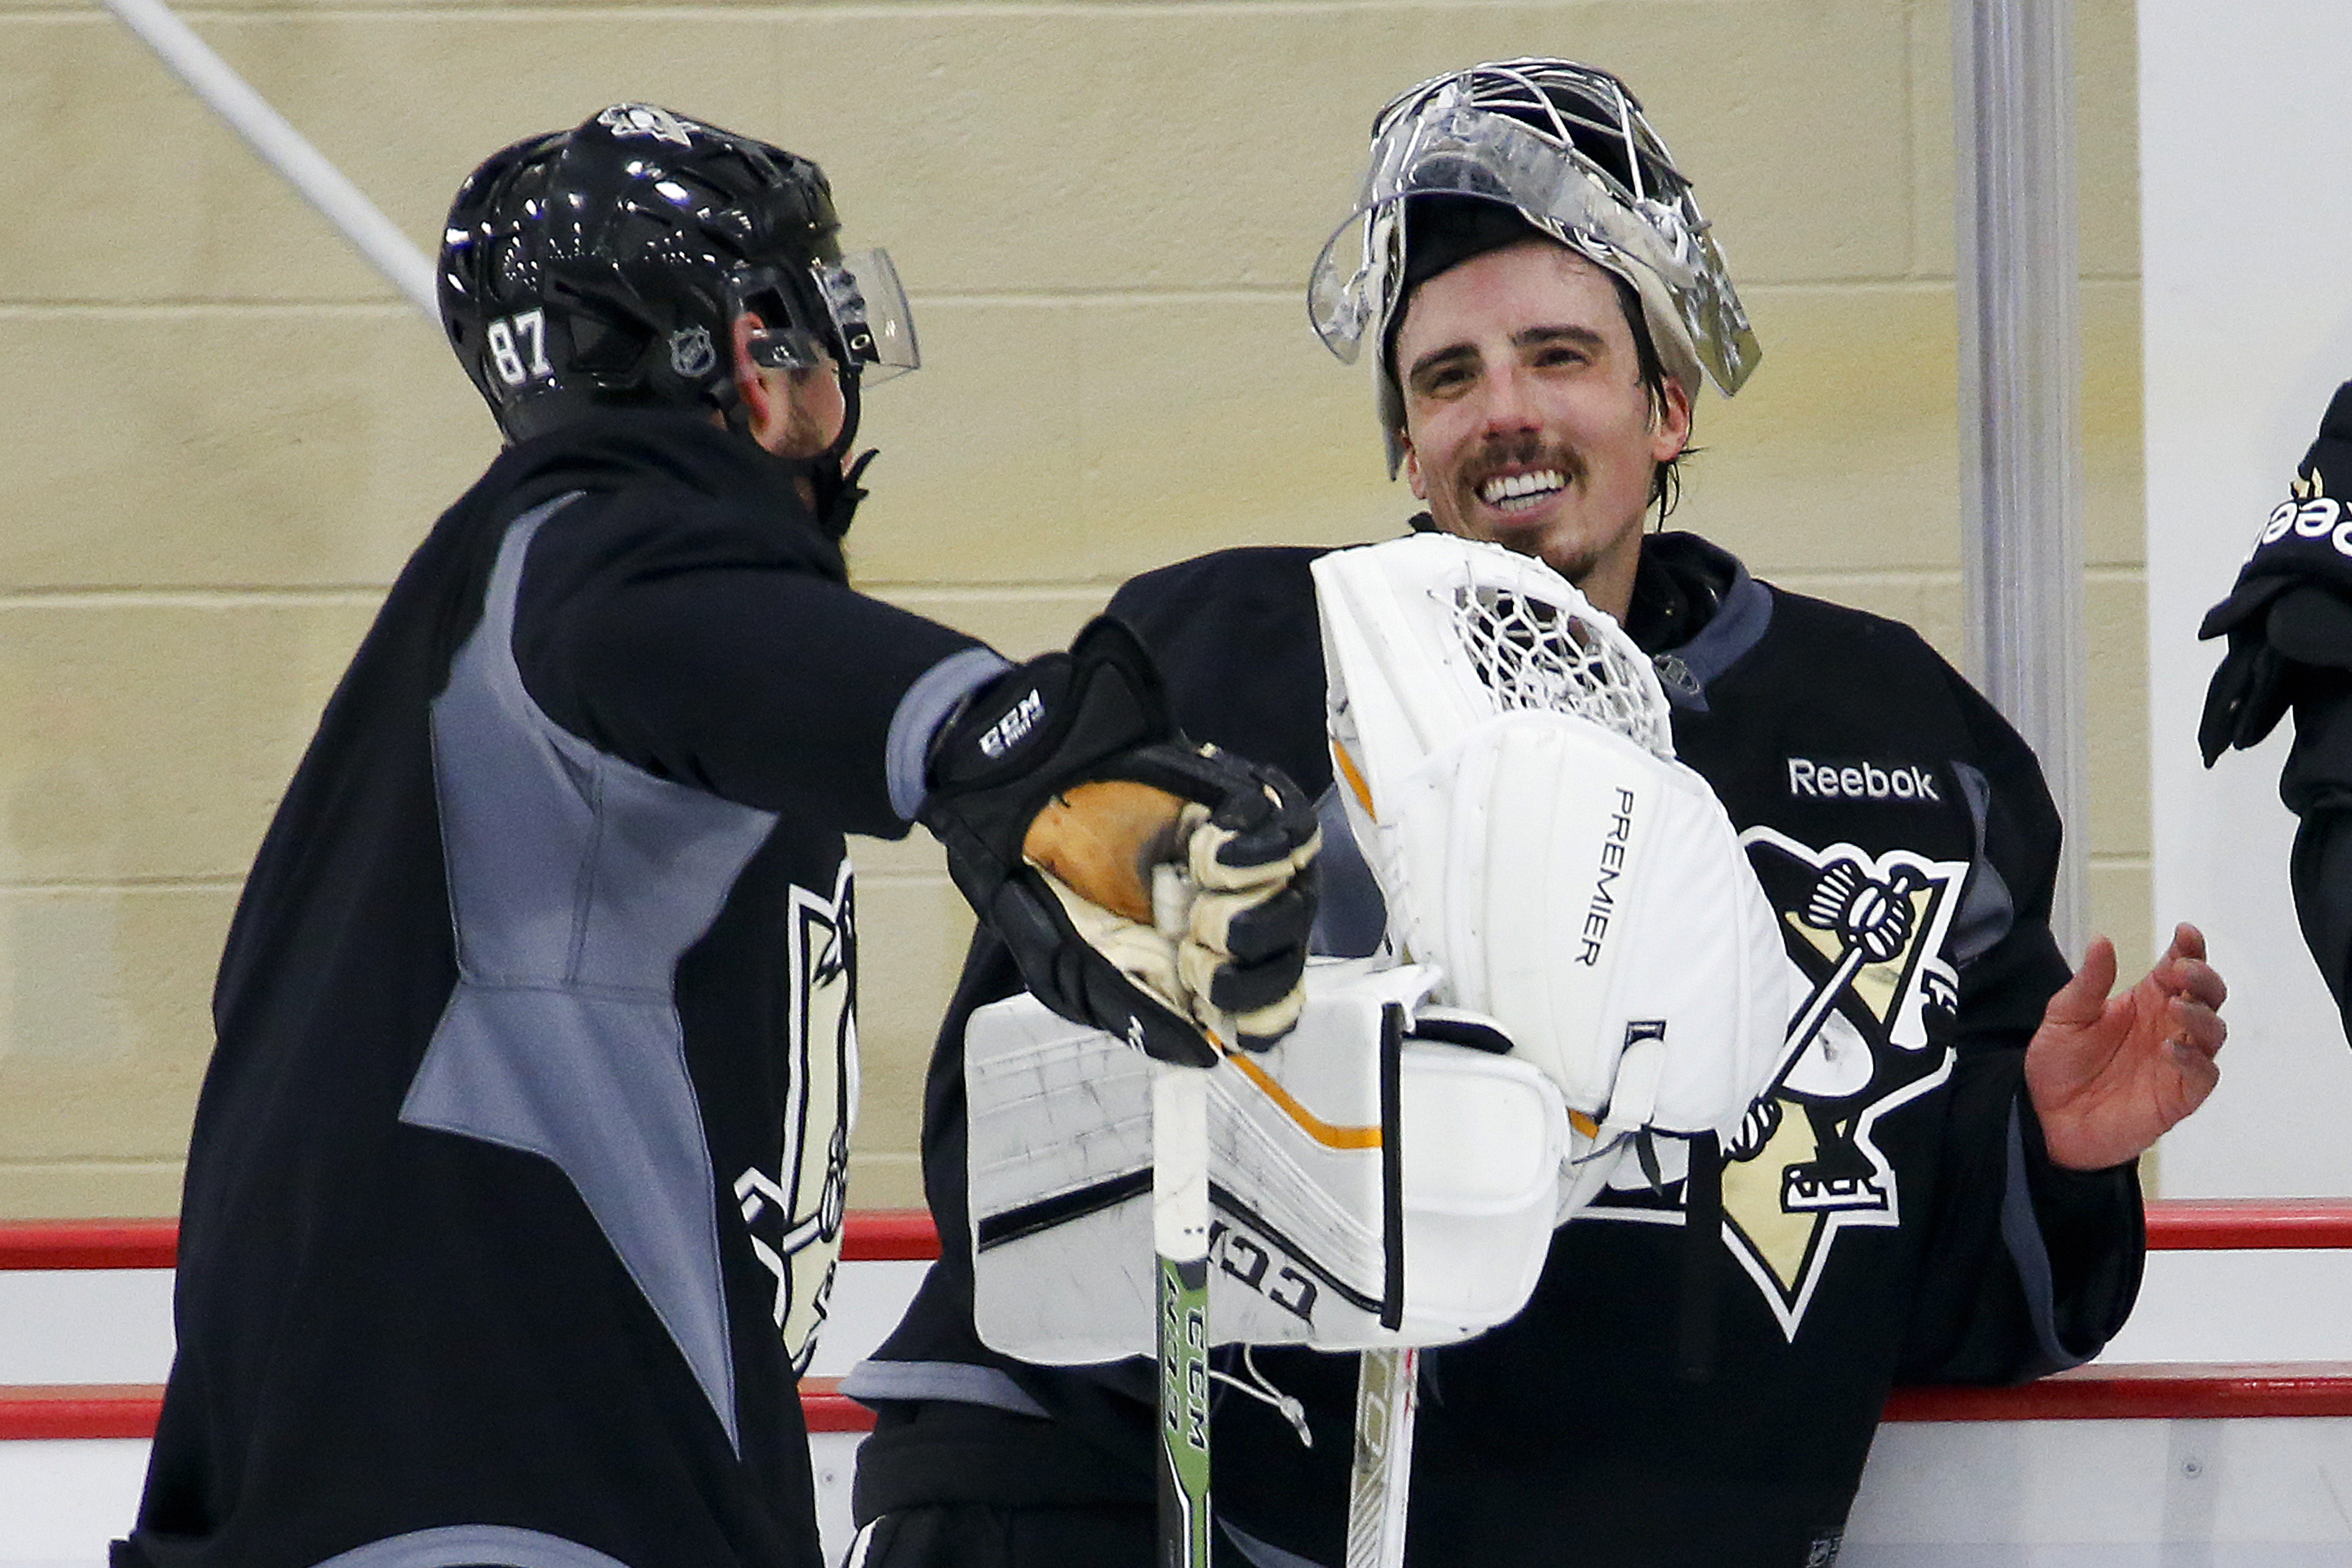 Pittsburgh Penguins goalie Marc-Andre Fleury, right, talks with teammate Sidney Crosby (87) during an NHL hockey practice at UPMC Lemieux Sports Center in Cranberry Township, Pa., Sunday, May 15, 2016. The Penguins were preparing for Game 2 of the Eastern